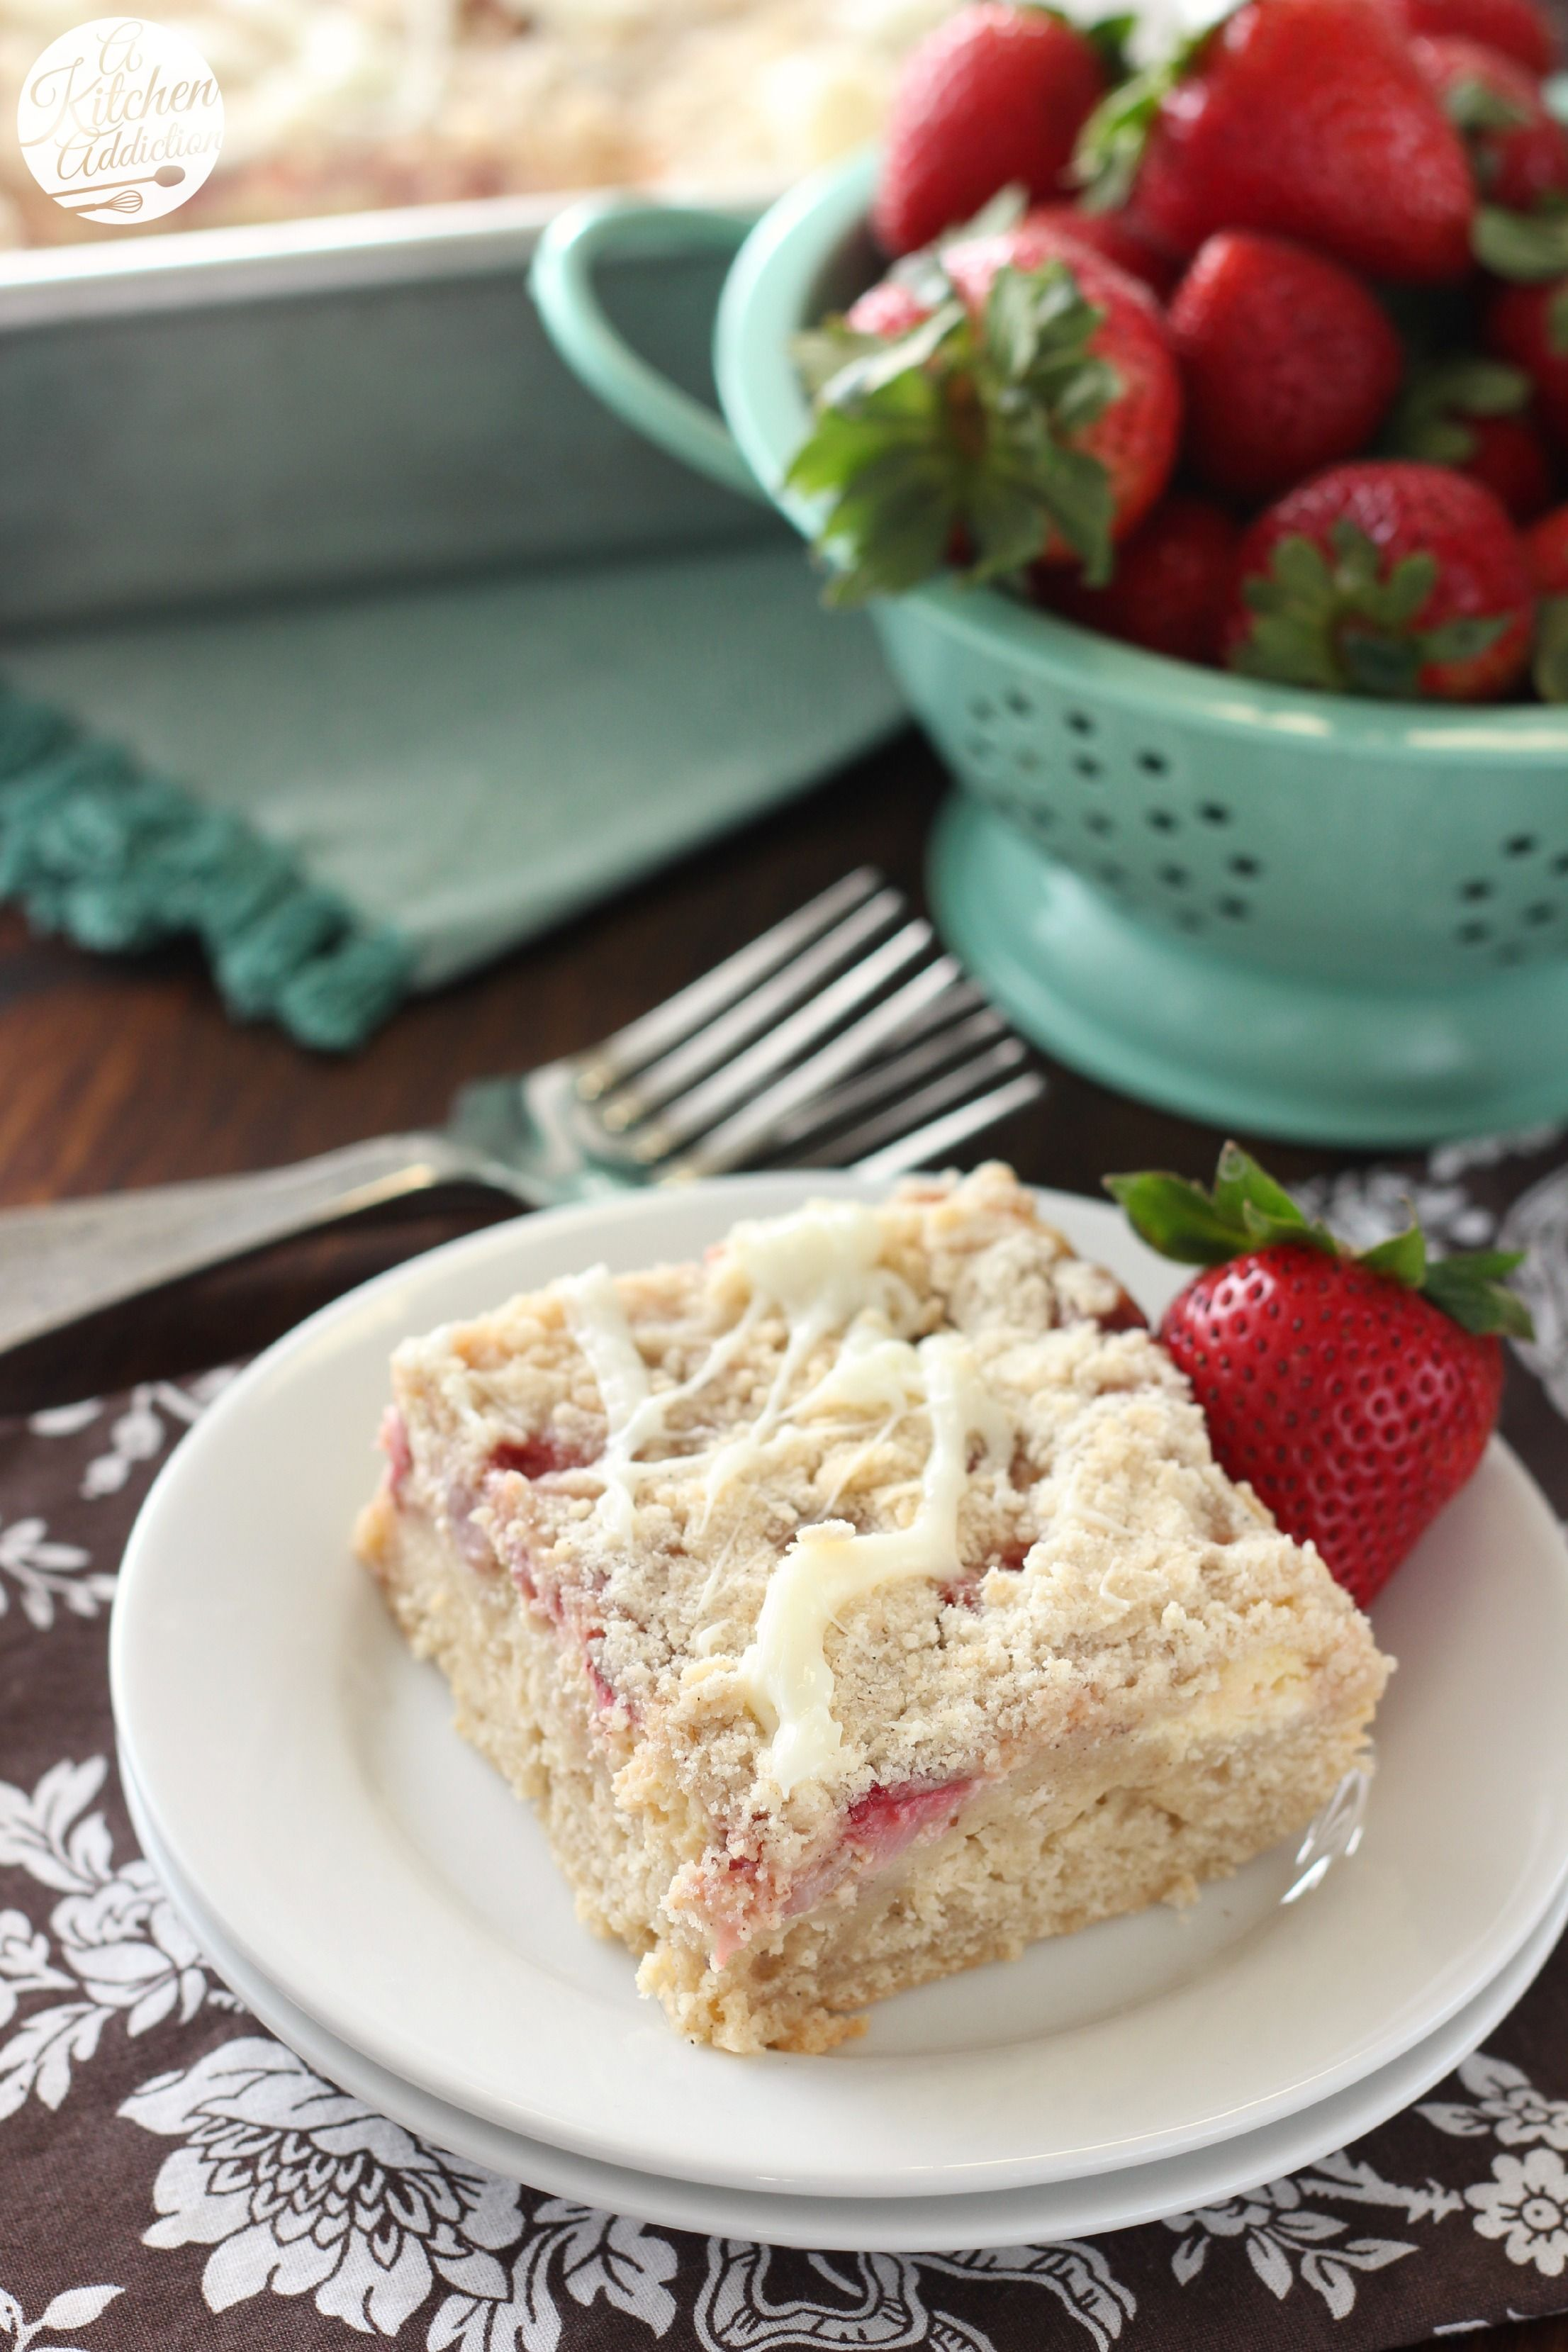 Strawberries and Cream Cheese Coffee Cake from